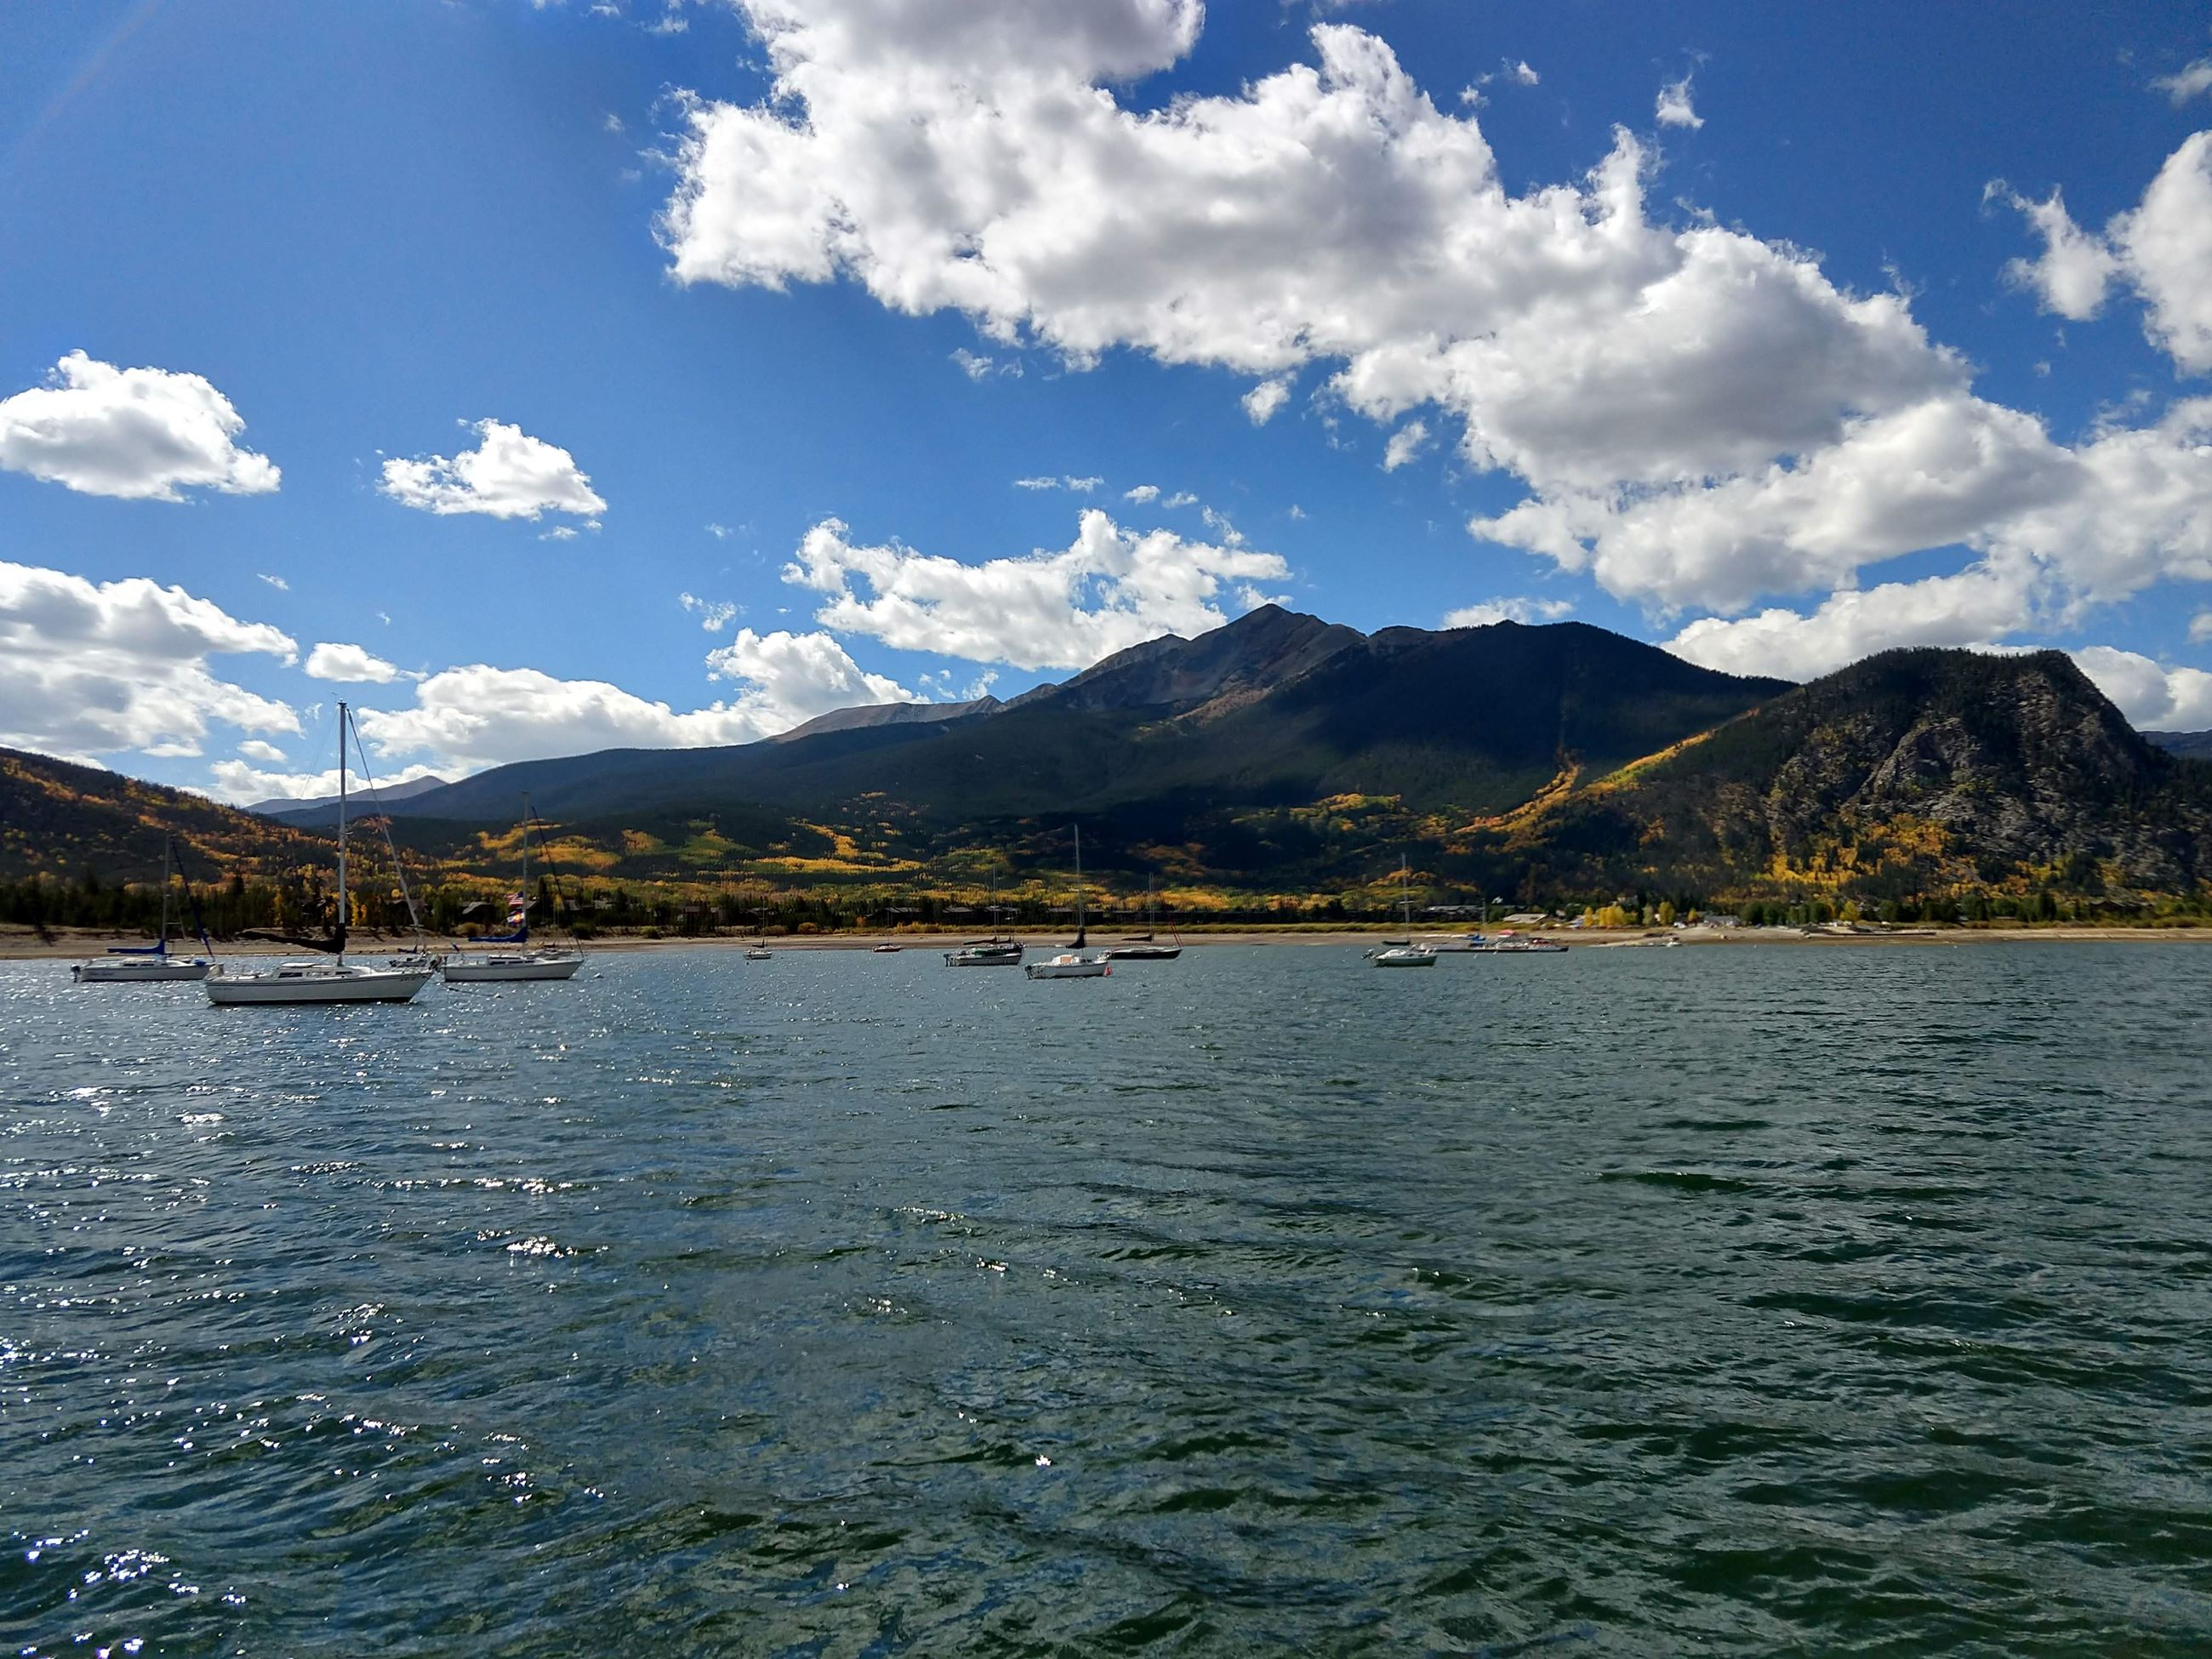 Sailboats on Dillon Reservoir in autumn